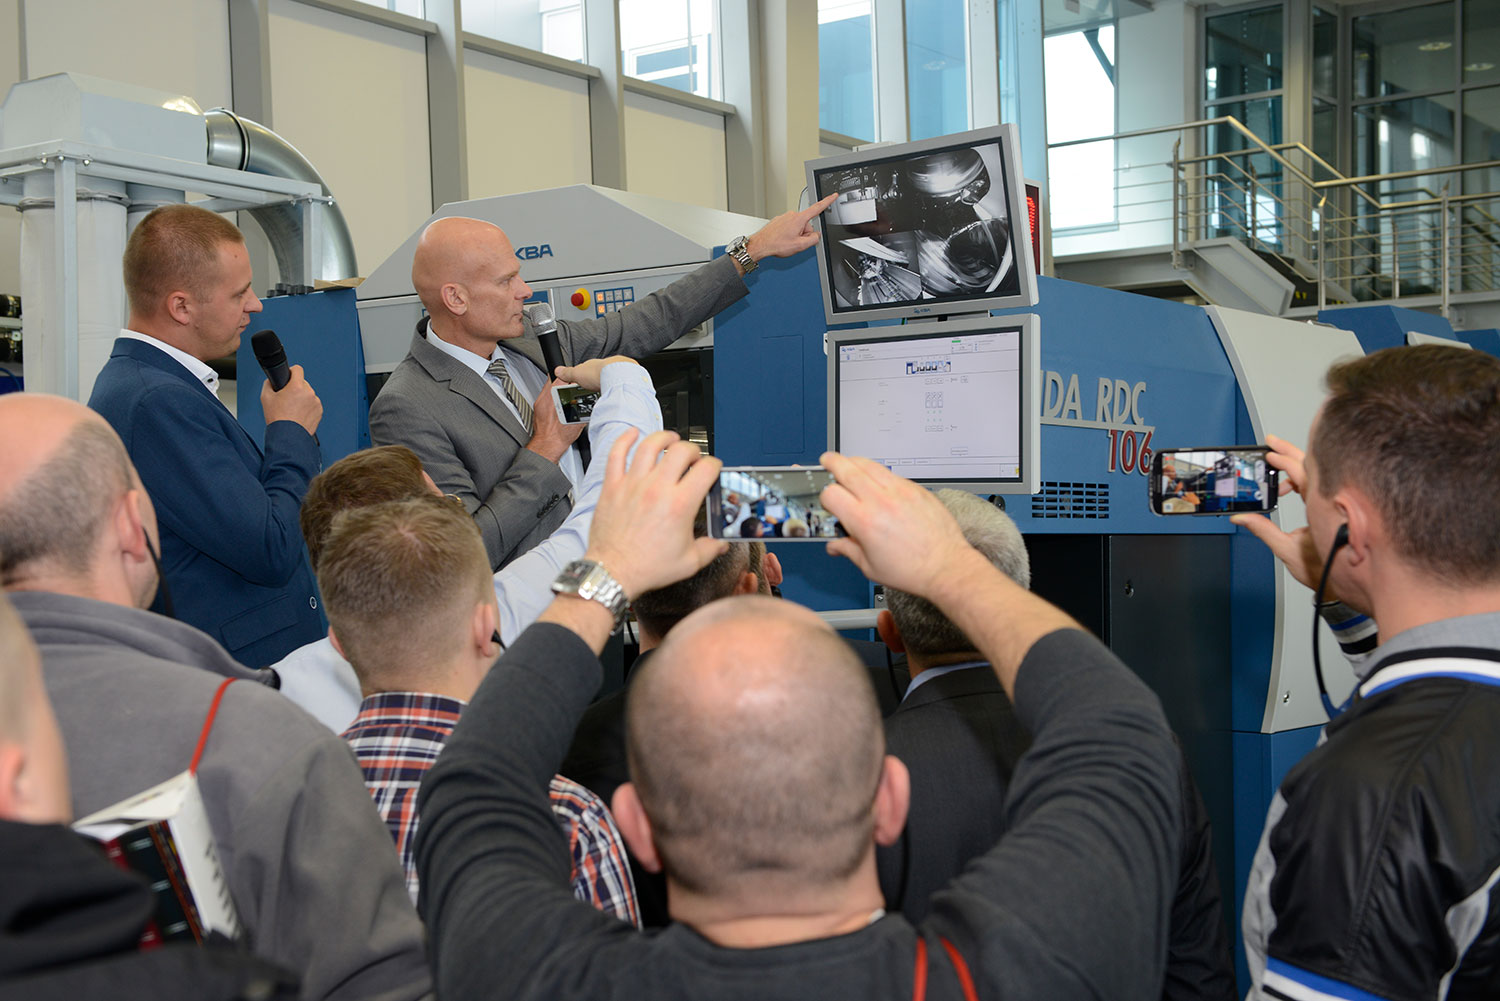 dirk-winkler-and-pawel-krasowski-during-the-live-presentation-of-the-rotary-die-cutter-rapida-rdc-106